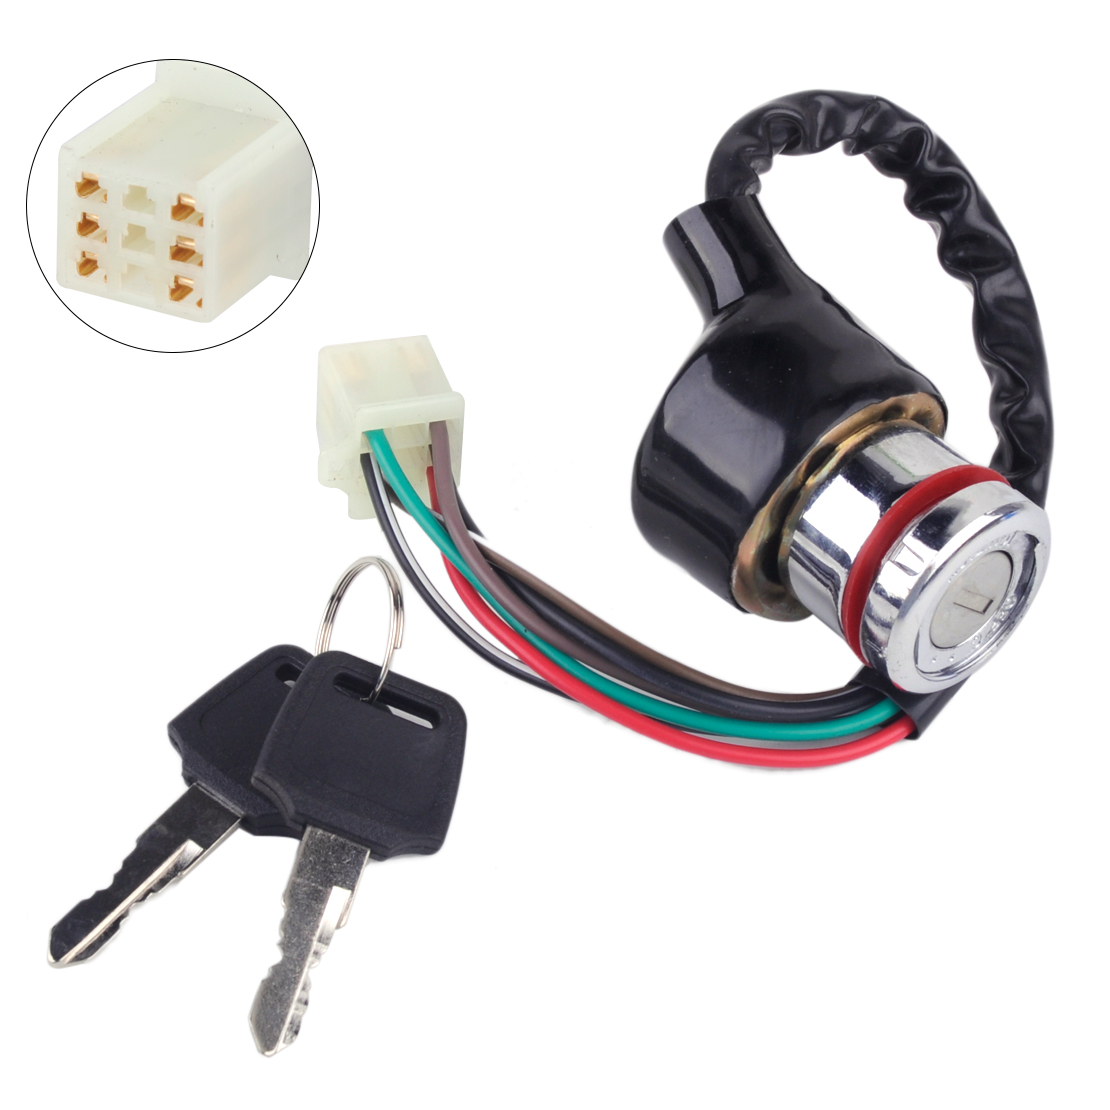 DWCX 6 Pin Car Motorcycle Ignition Switch 3 Position 6 Wire With 2 Keys for Scooter ATV Go Kart Harley Bobber Chopper Dirt Bike